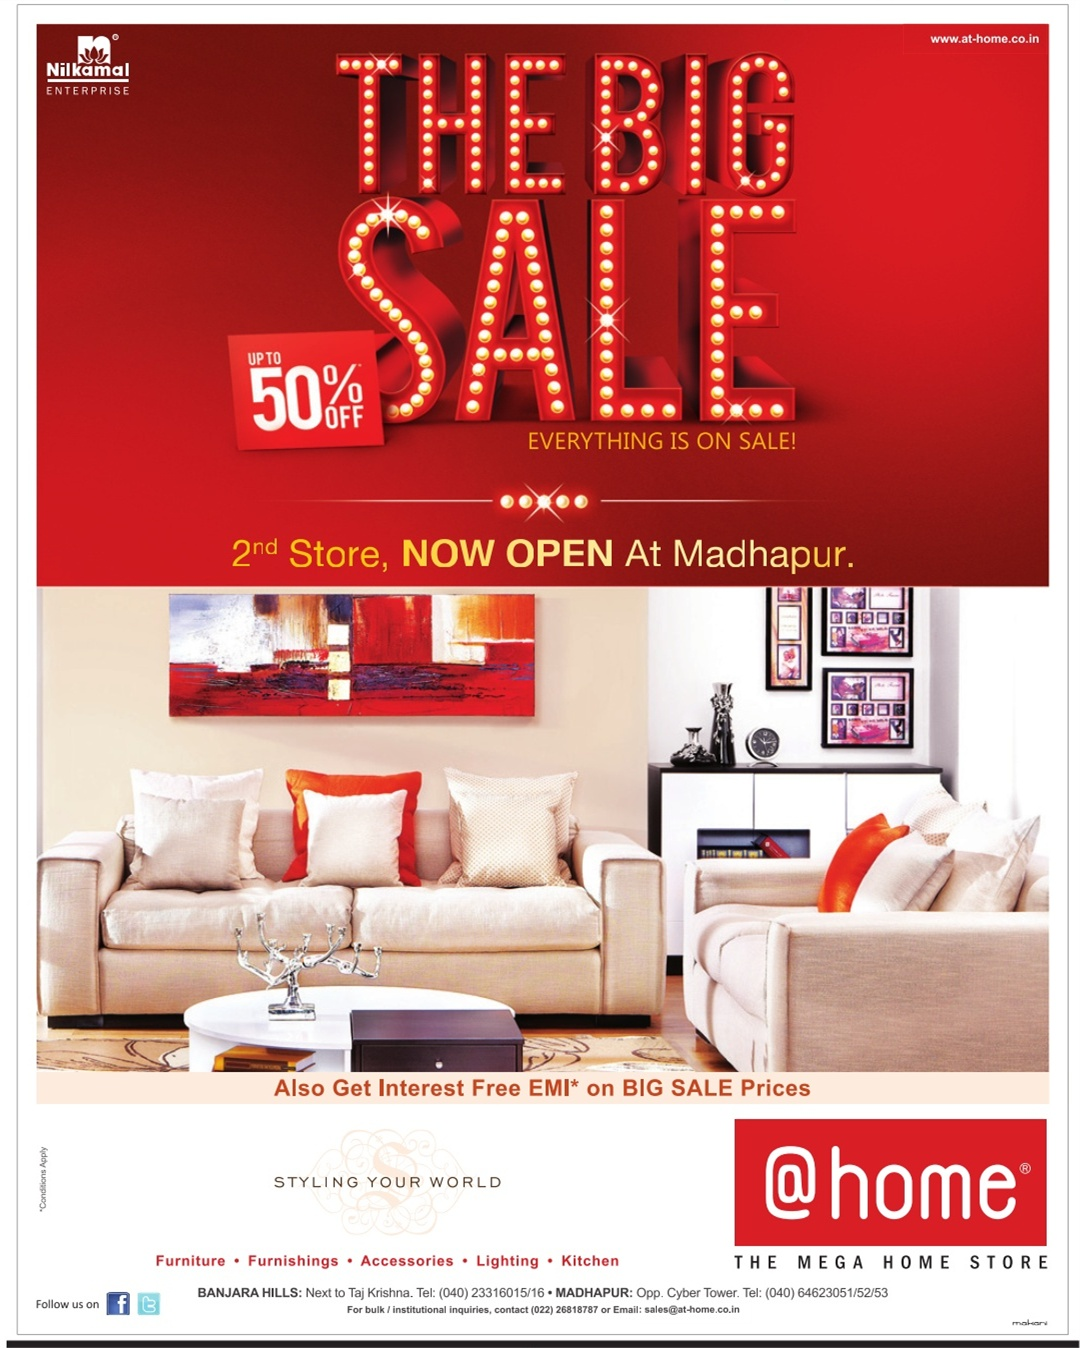 THE BIG SALE UPTO 50% OFF On FURNITURE At @home, Hyderabad